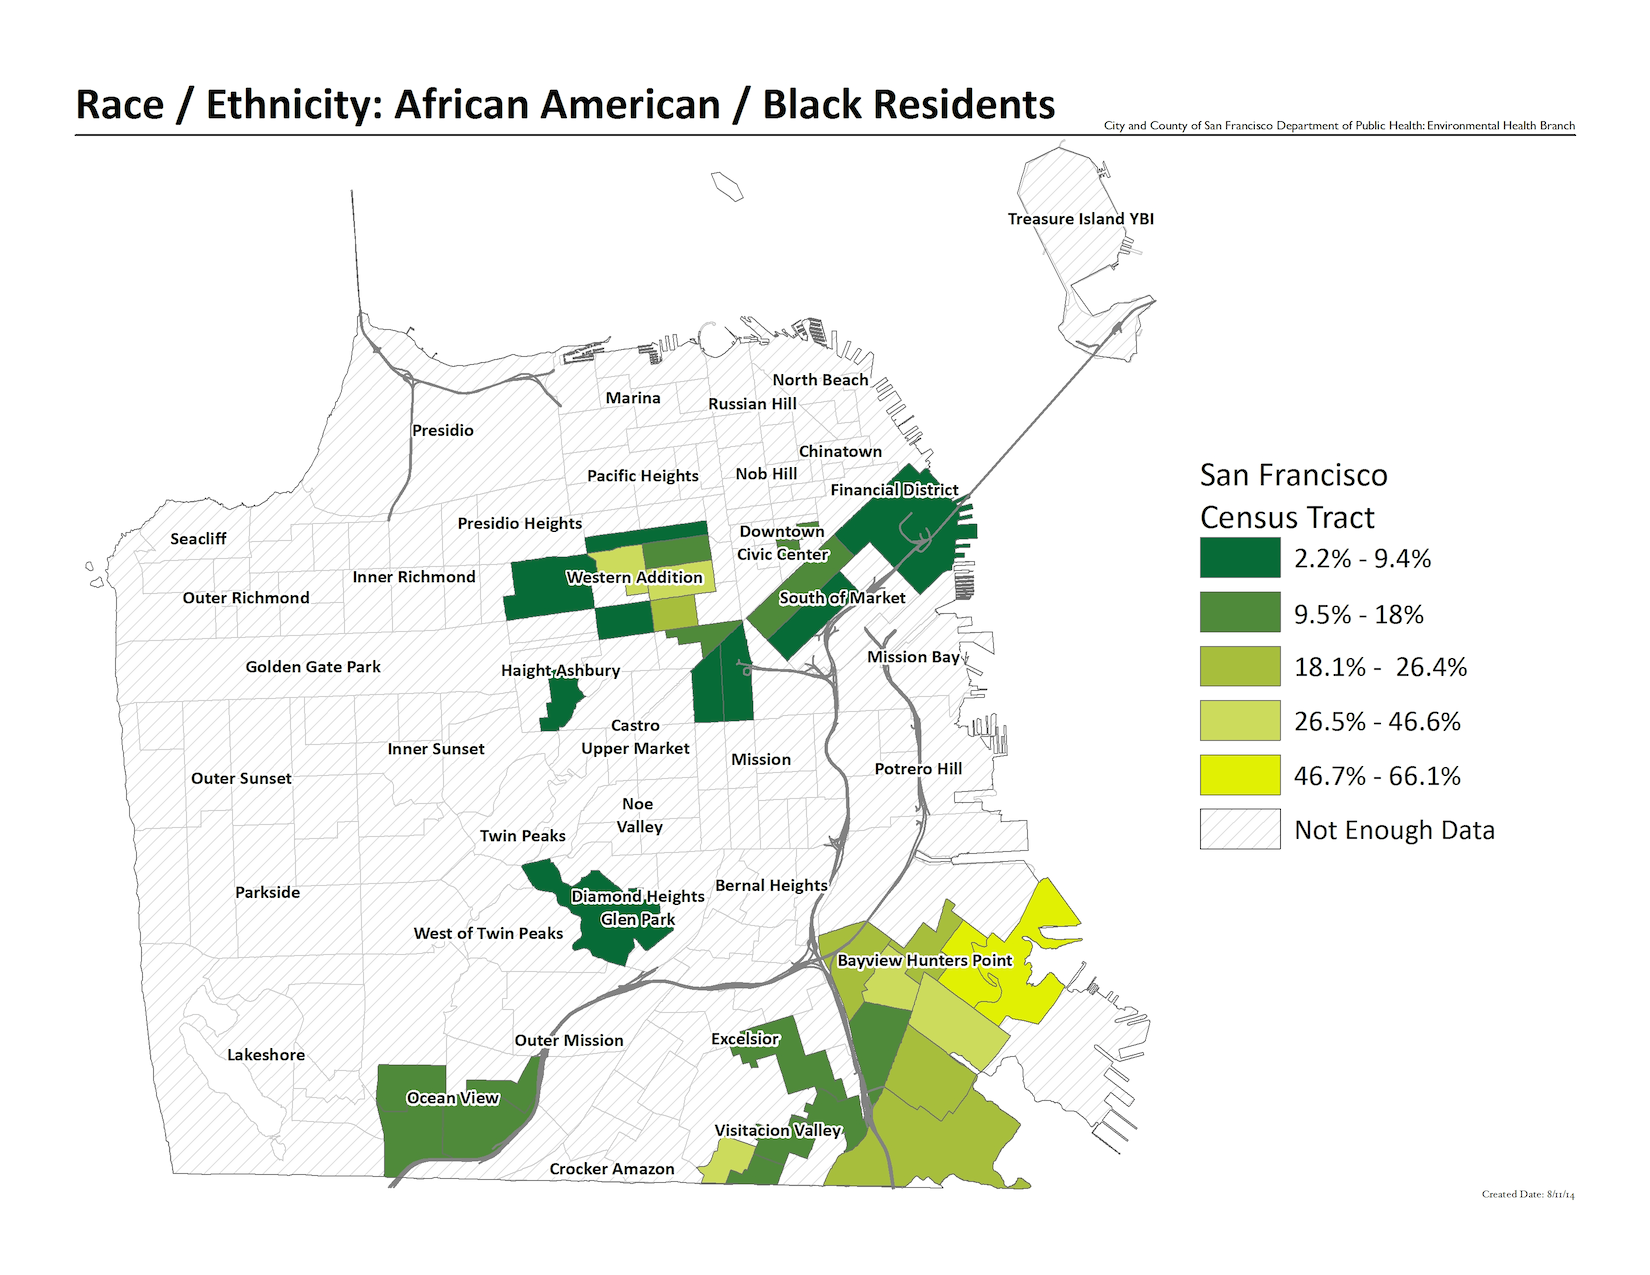 Map of percent black / African American residents by census tract. Bayview Hunters point has the highest percentage at 66%